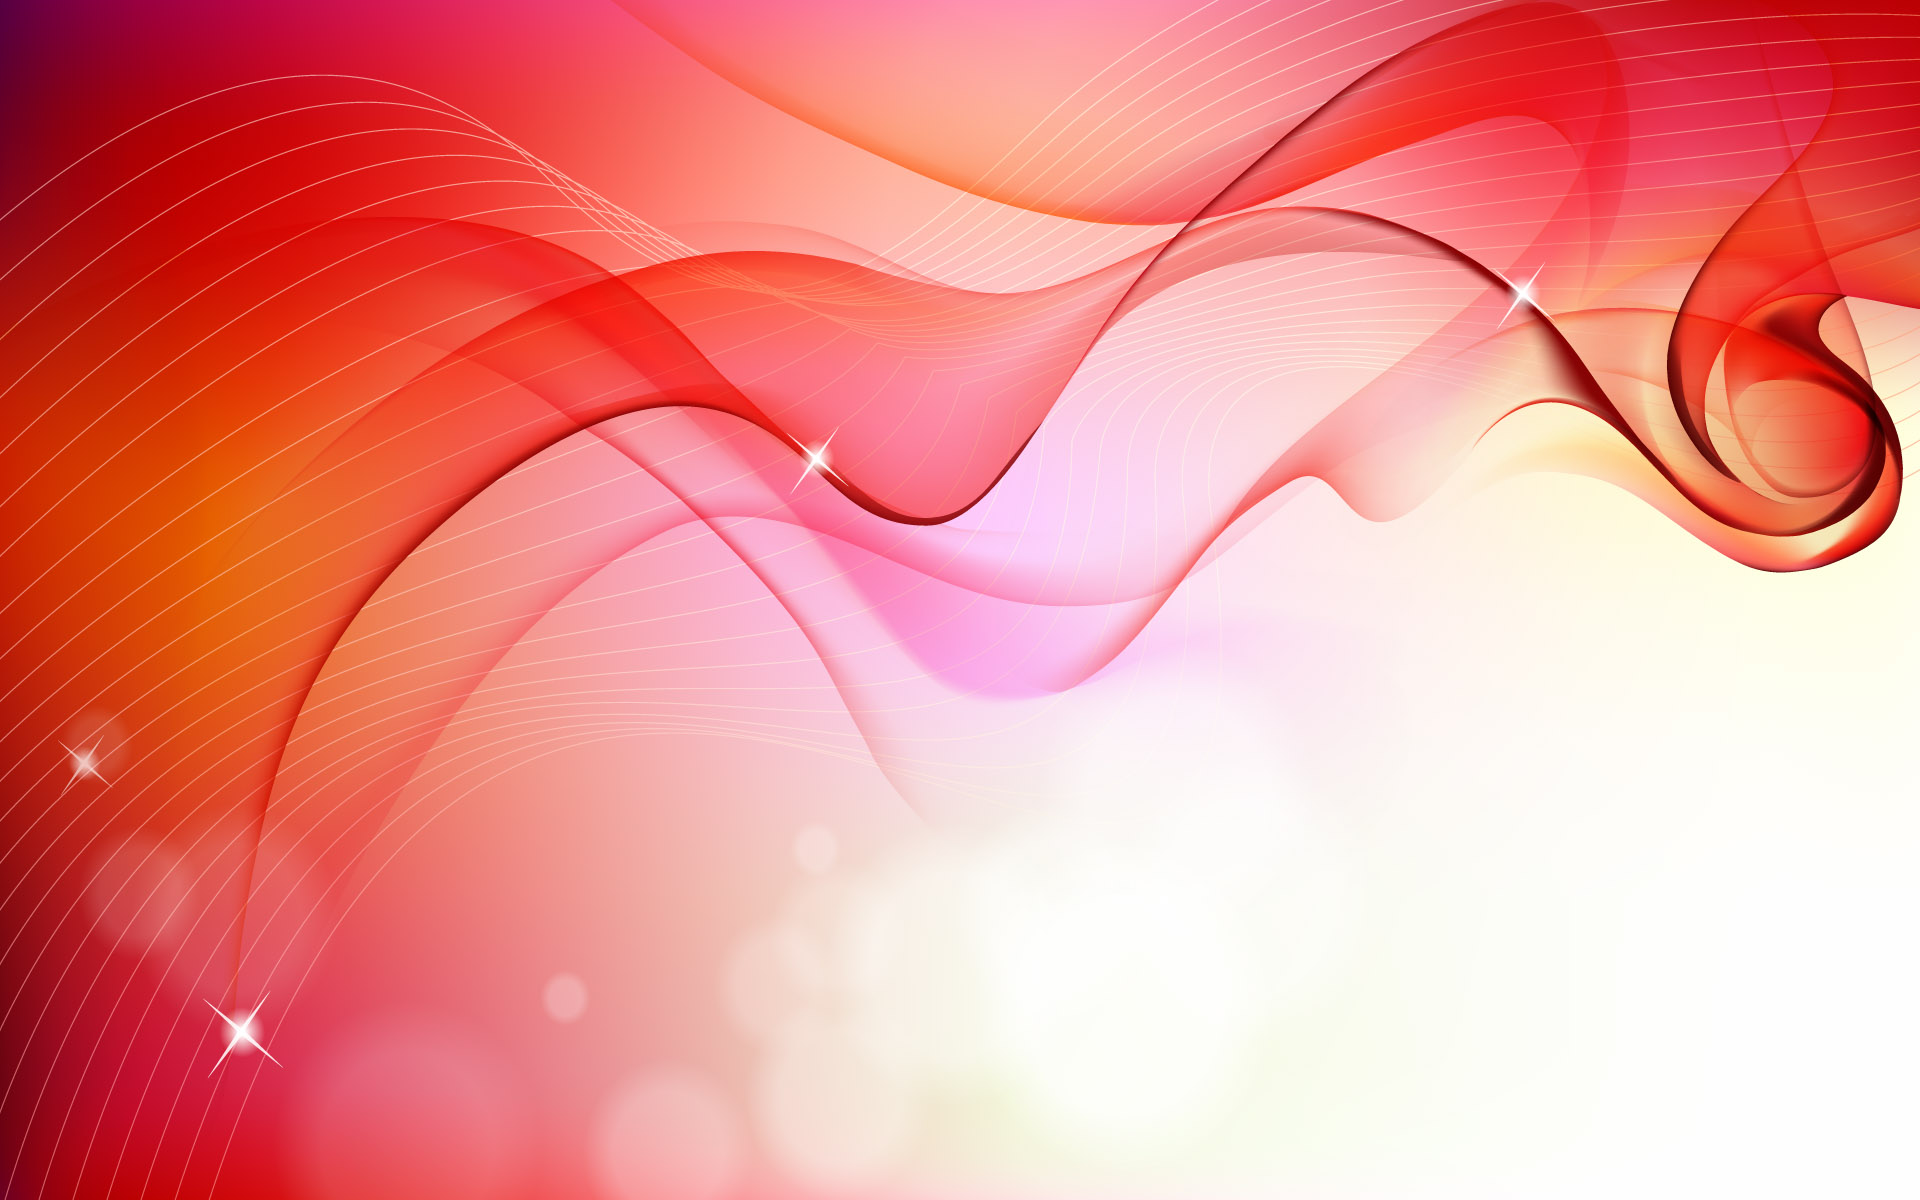 backgrounds-wallpaper-vector-tinted-background-wallpapers-wallpaper-red-background-vector-backgrounds-tinted-wallpapers